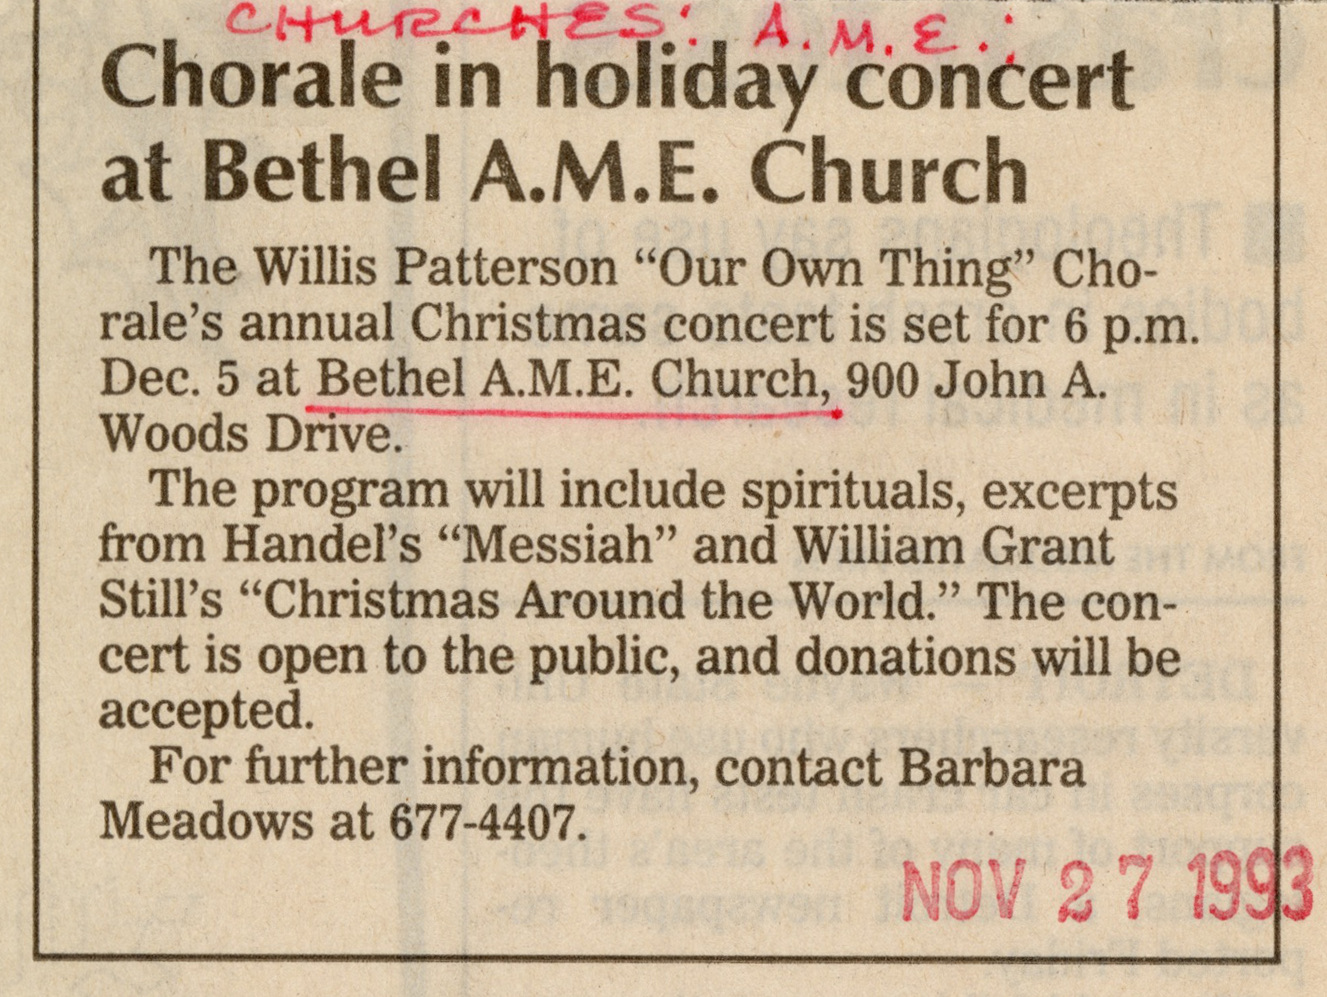 Chorale in holiday concert at Bethel AME Church image